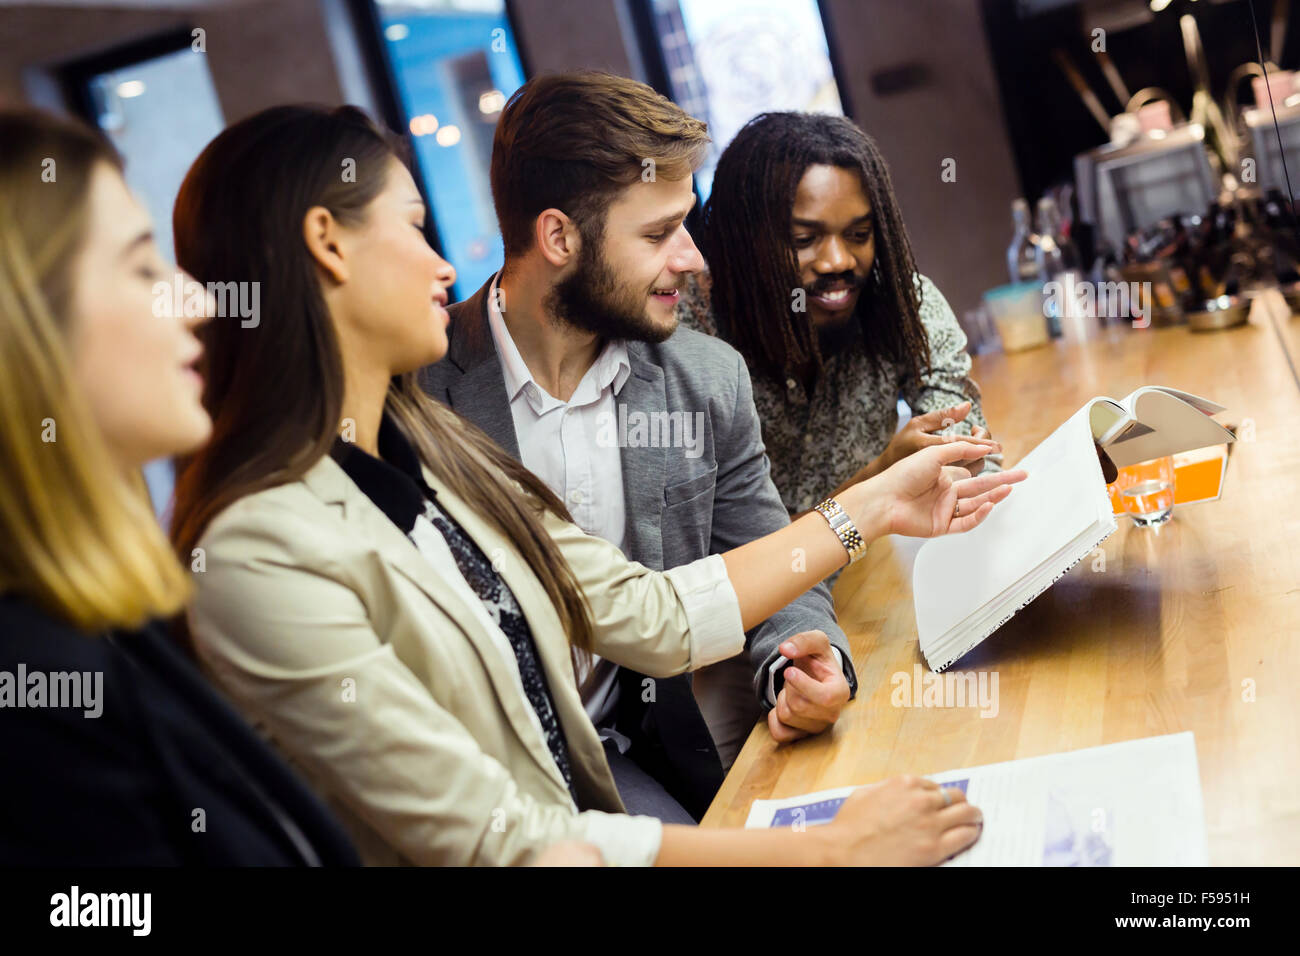 Colleagues reading articles in a pub and discussing the contents - Stock Image